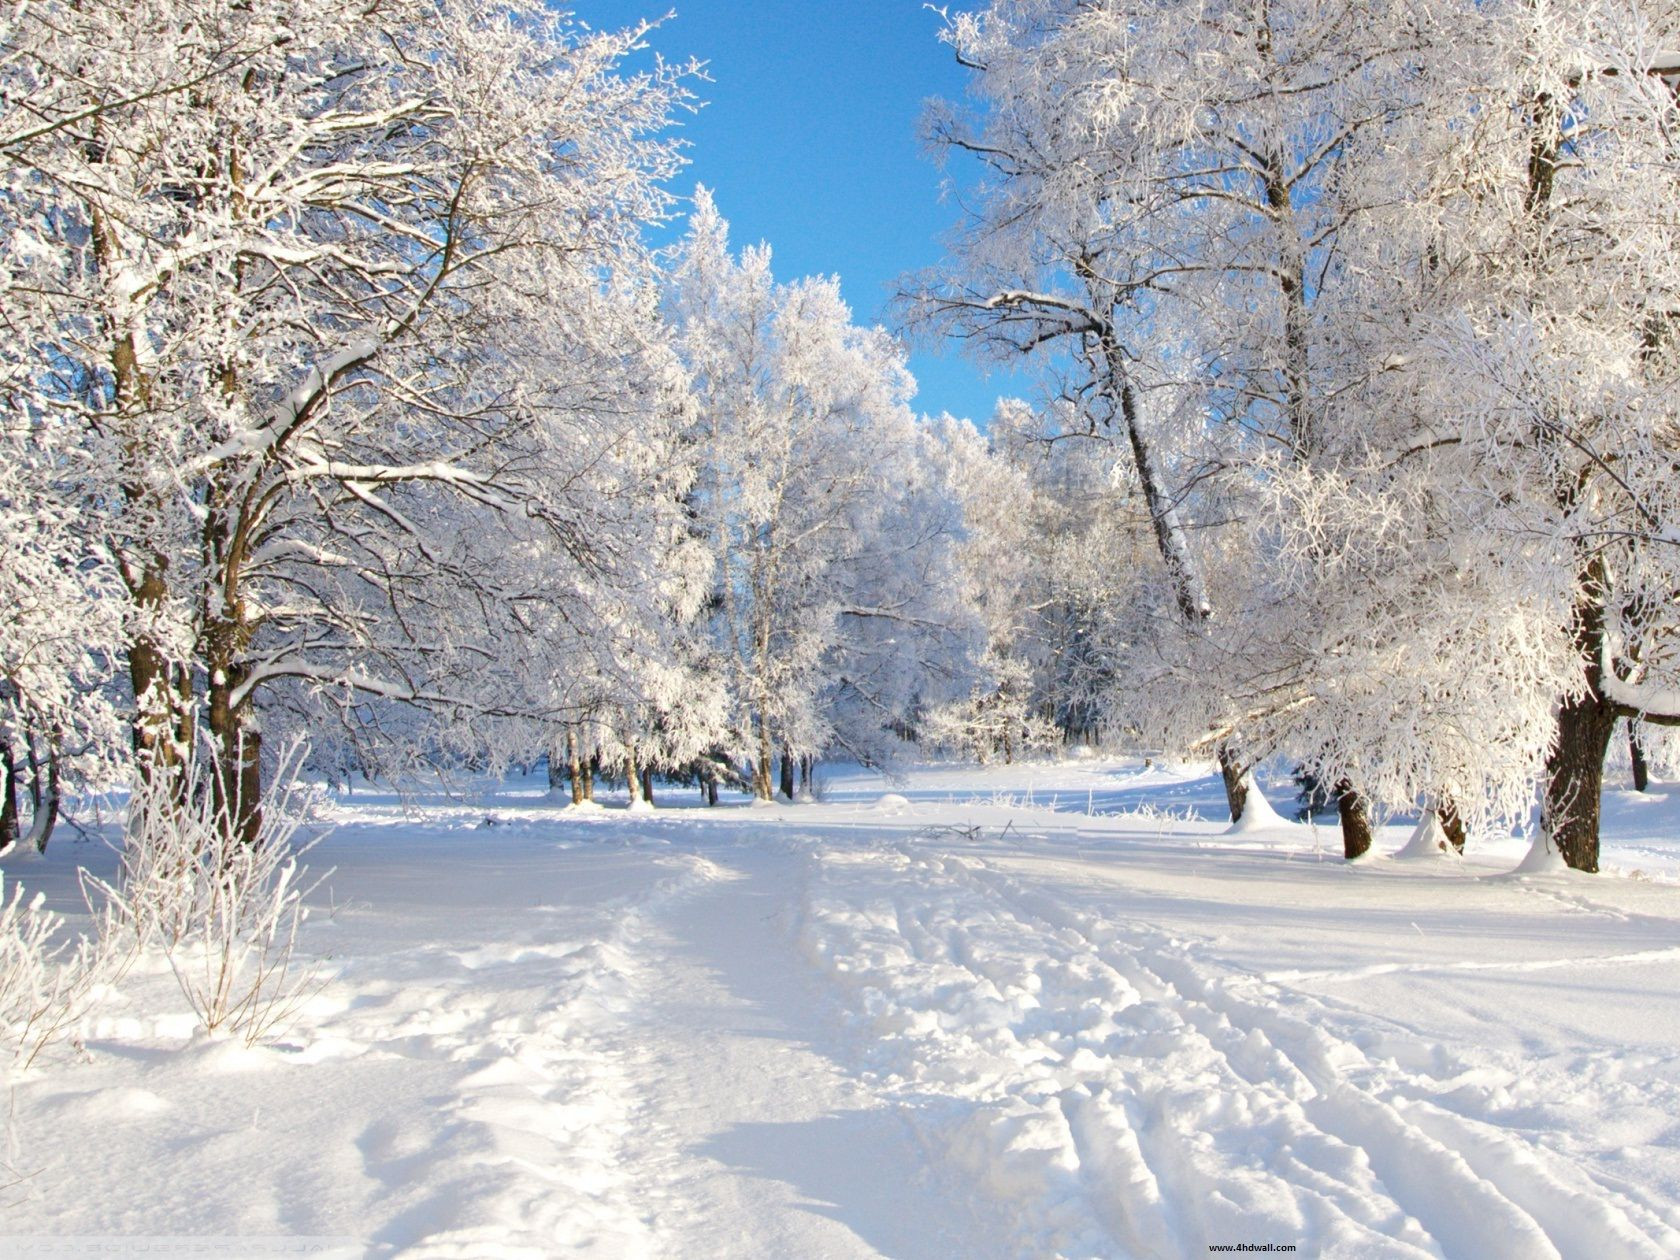 Free Wallpaper Downloads | Download Free High Definition Winter Wallpapers | Hd Wallpapers ...